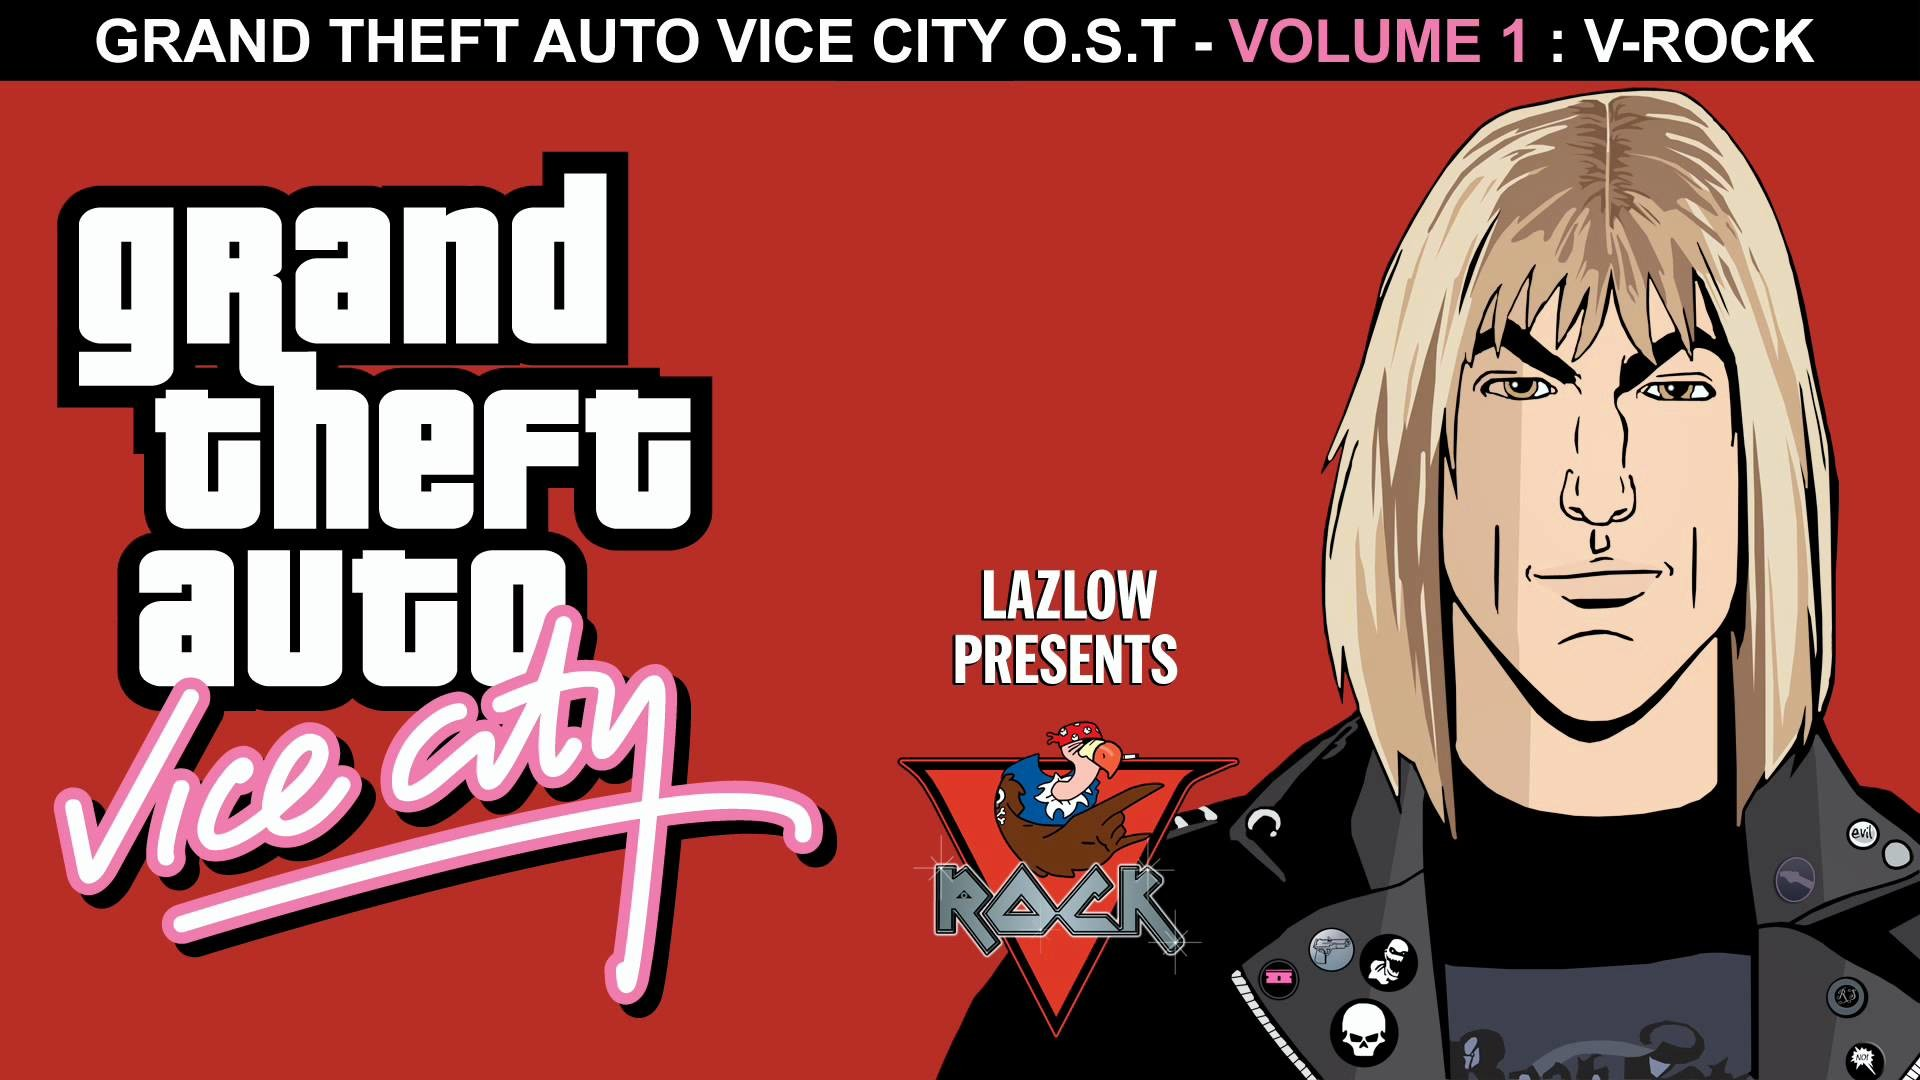 Gta vice city wallpapers 67 images 1654x2283 grand theft vice city video game background for free voltagebd Gallery